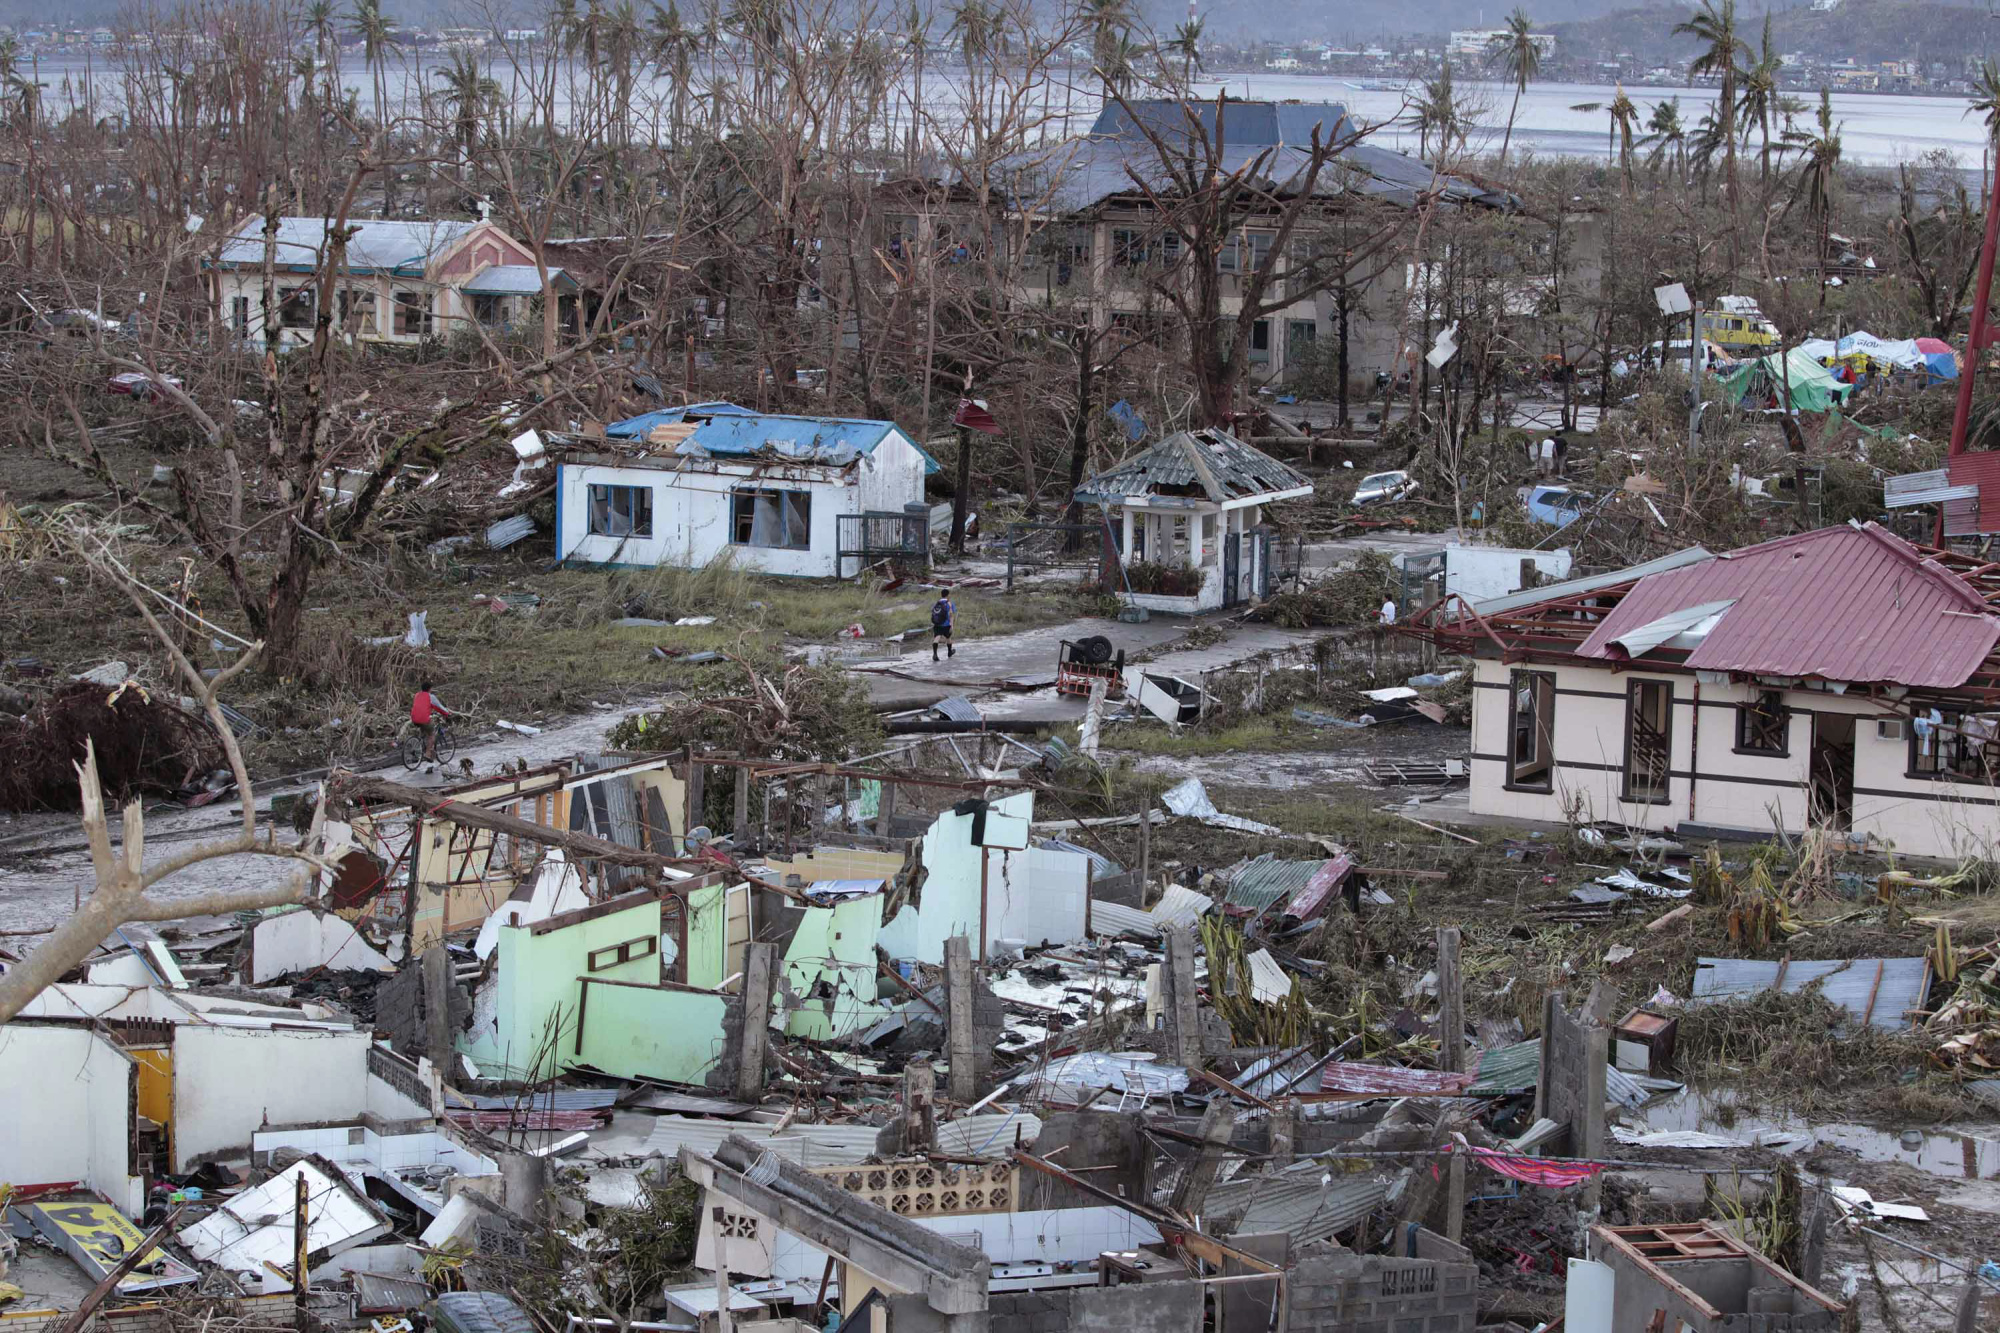 A resident walks by remains of houses on Nov. 9, 2013, after Supertyphoon Haiyan slammed into Tacloban, in the Philippines' Leyte province